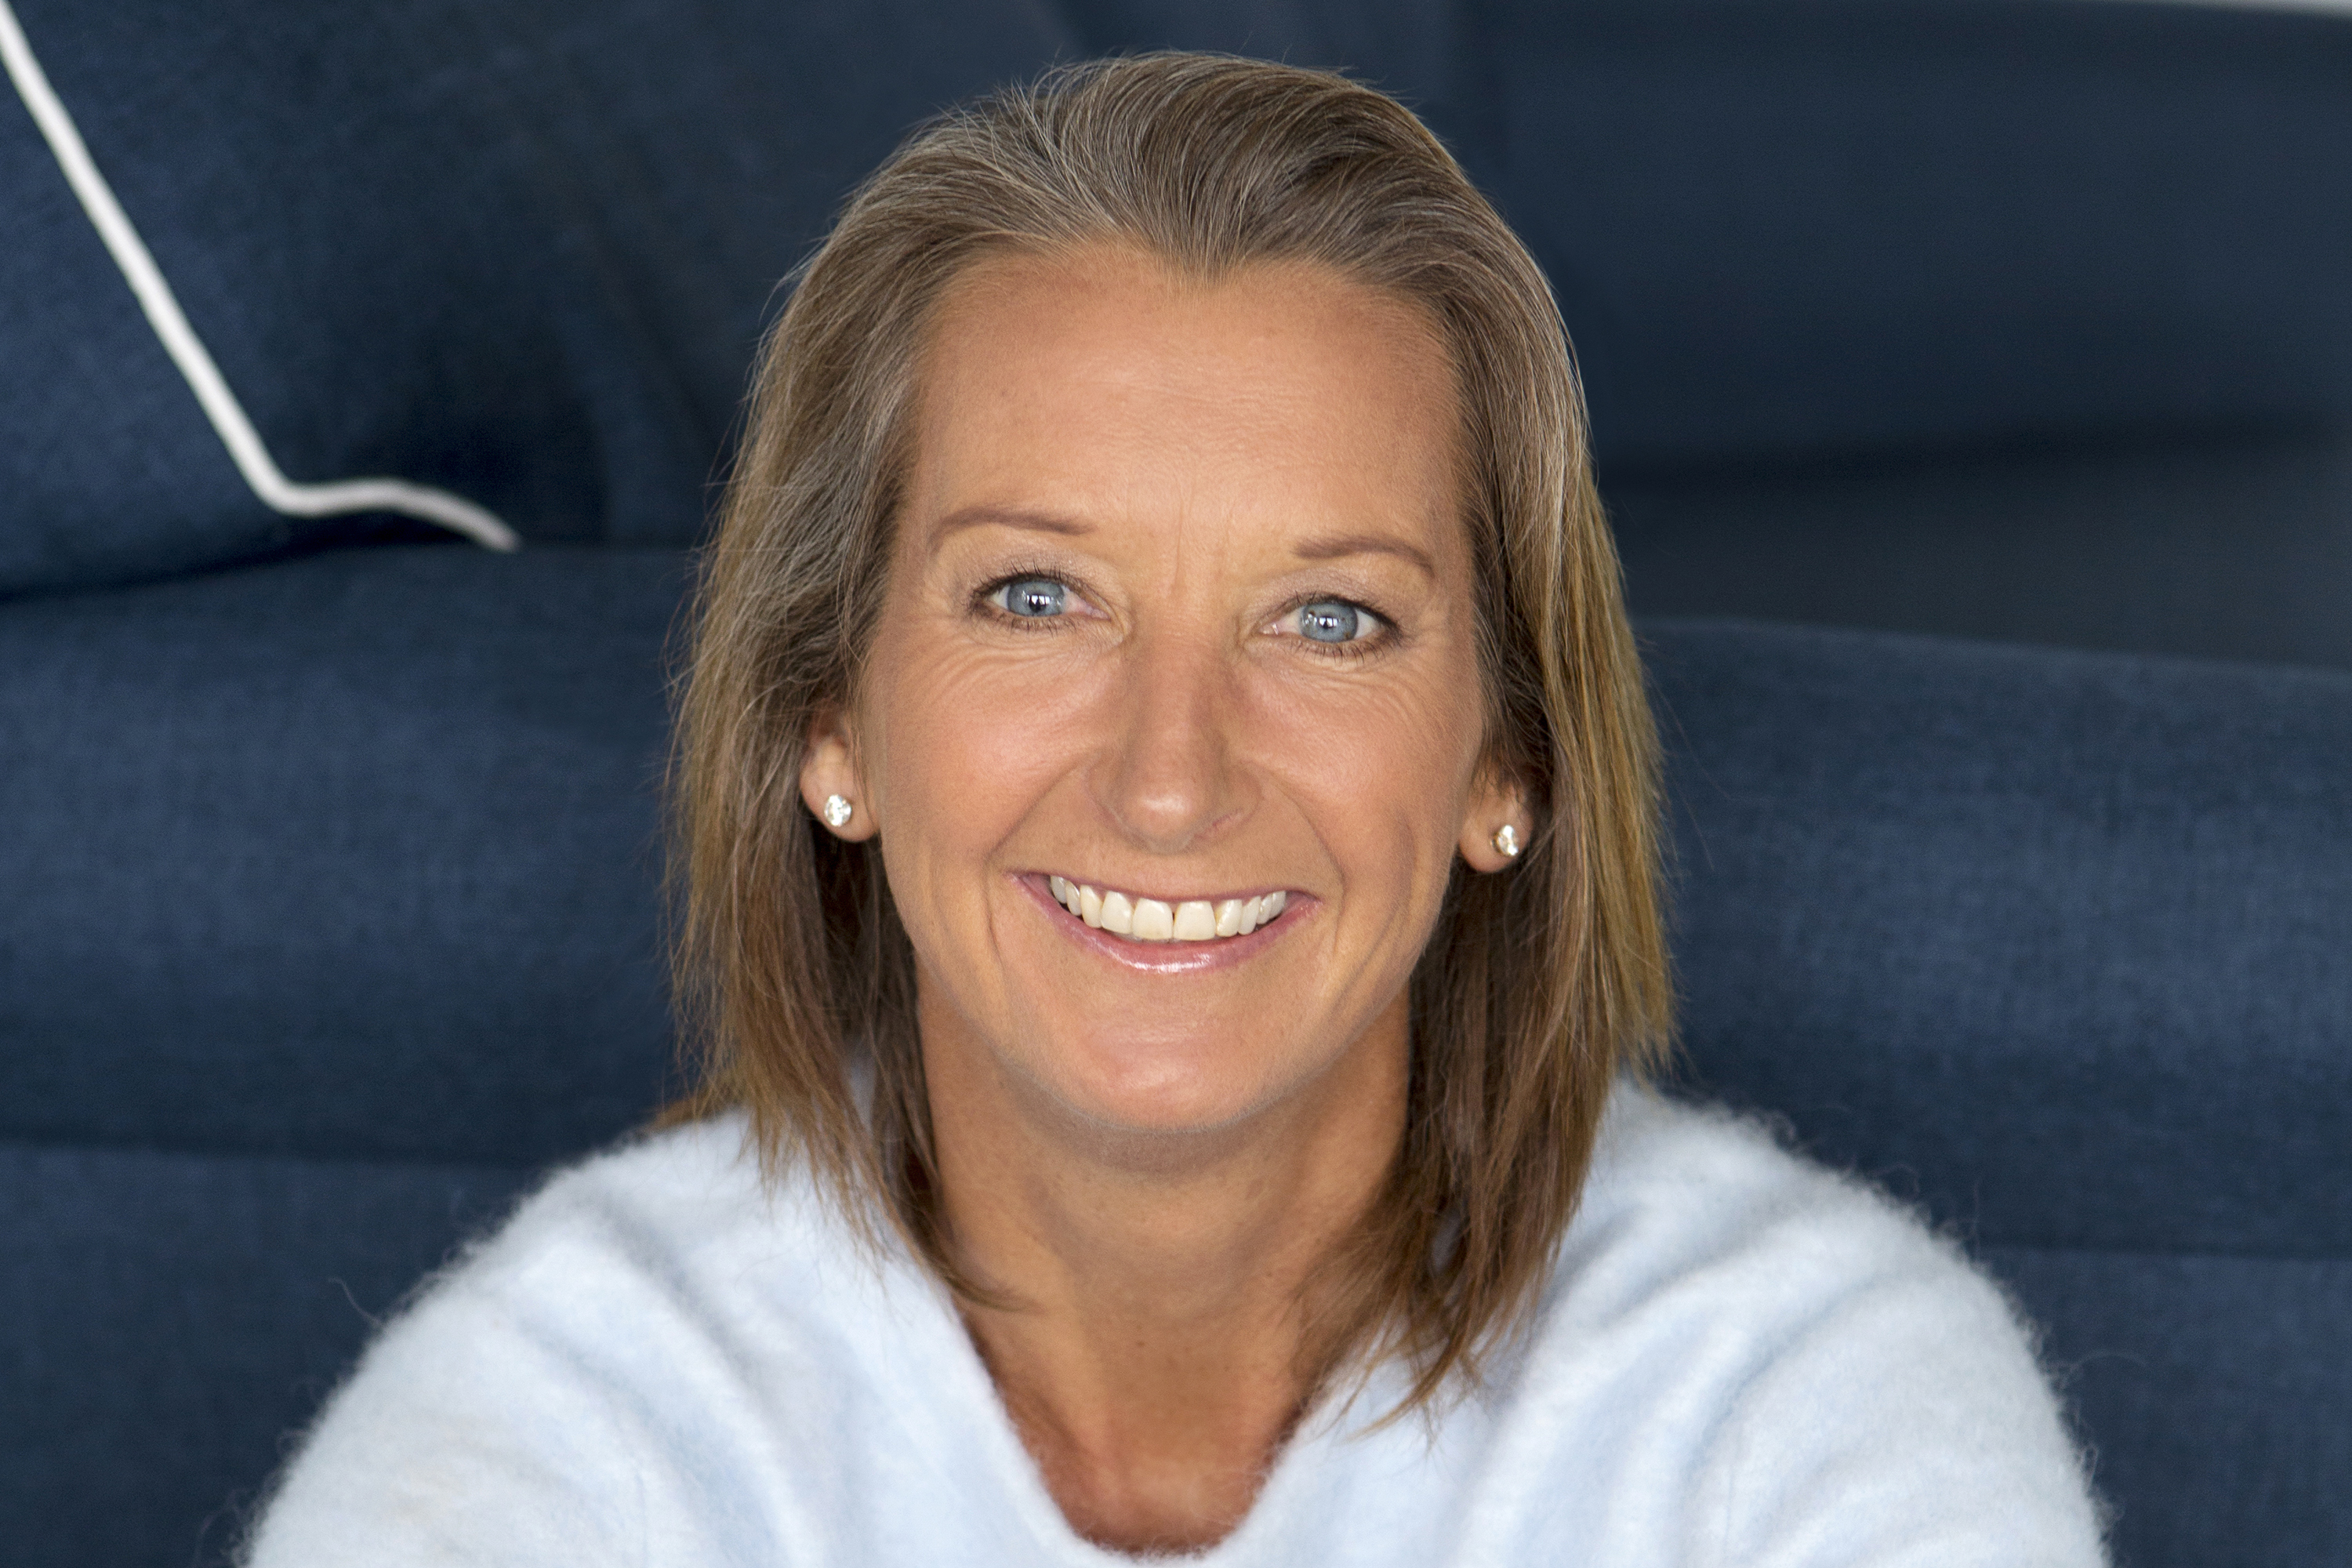 Speakers related to Rodney Eade: Layne Beachley